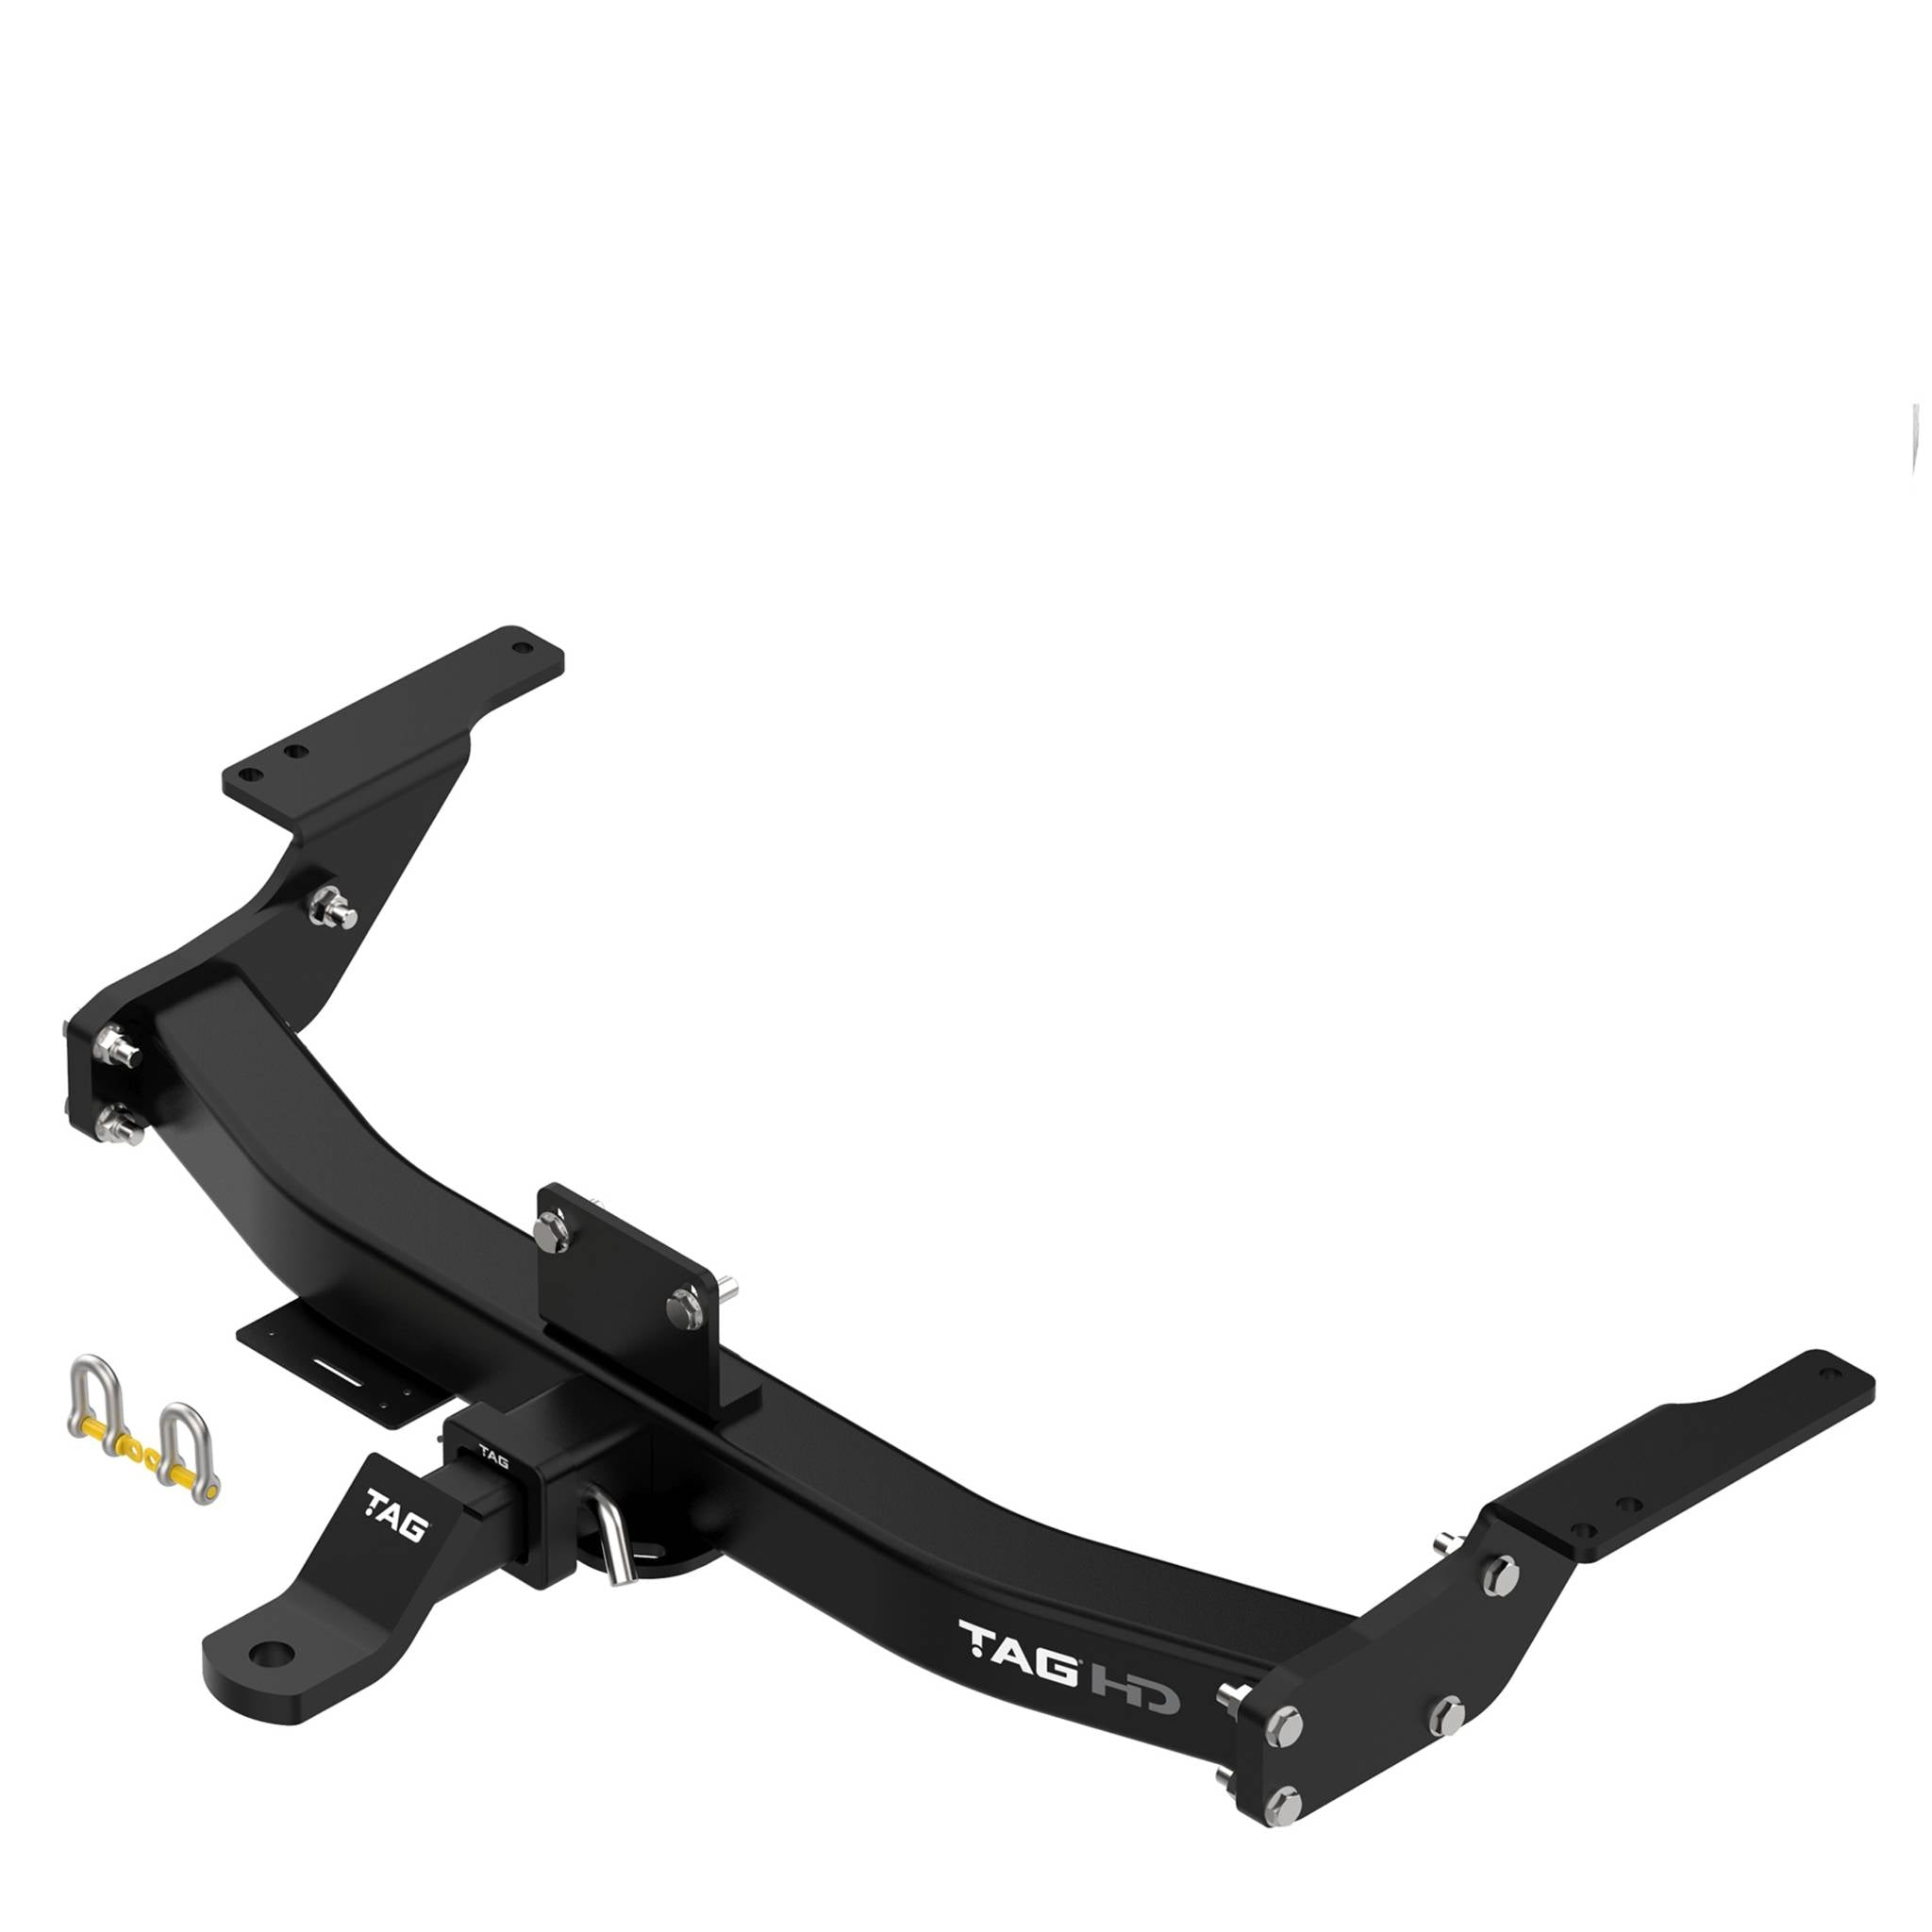 TAG Heavy Duty Towbar to suit Toyota Prado (11/2009 - on)